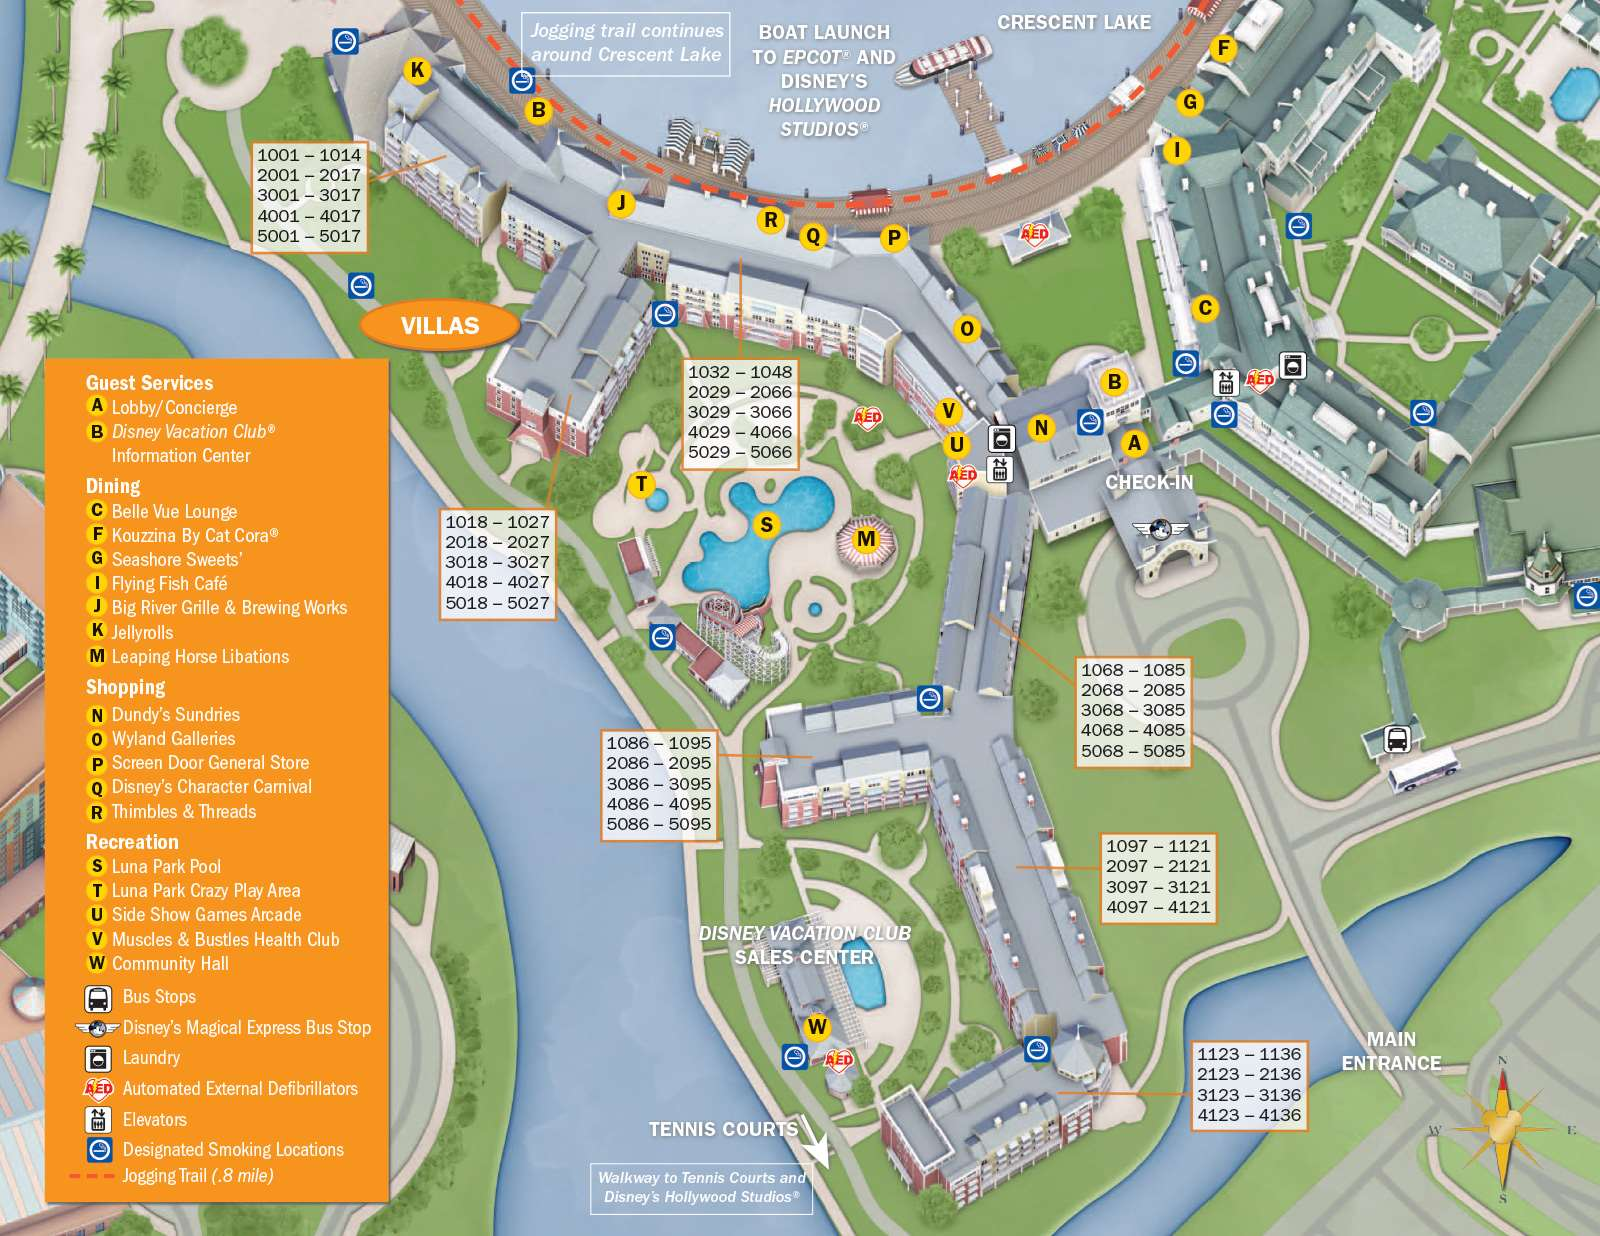 Disney World: walt disney world resorts map